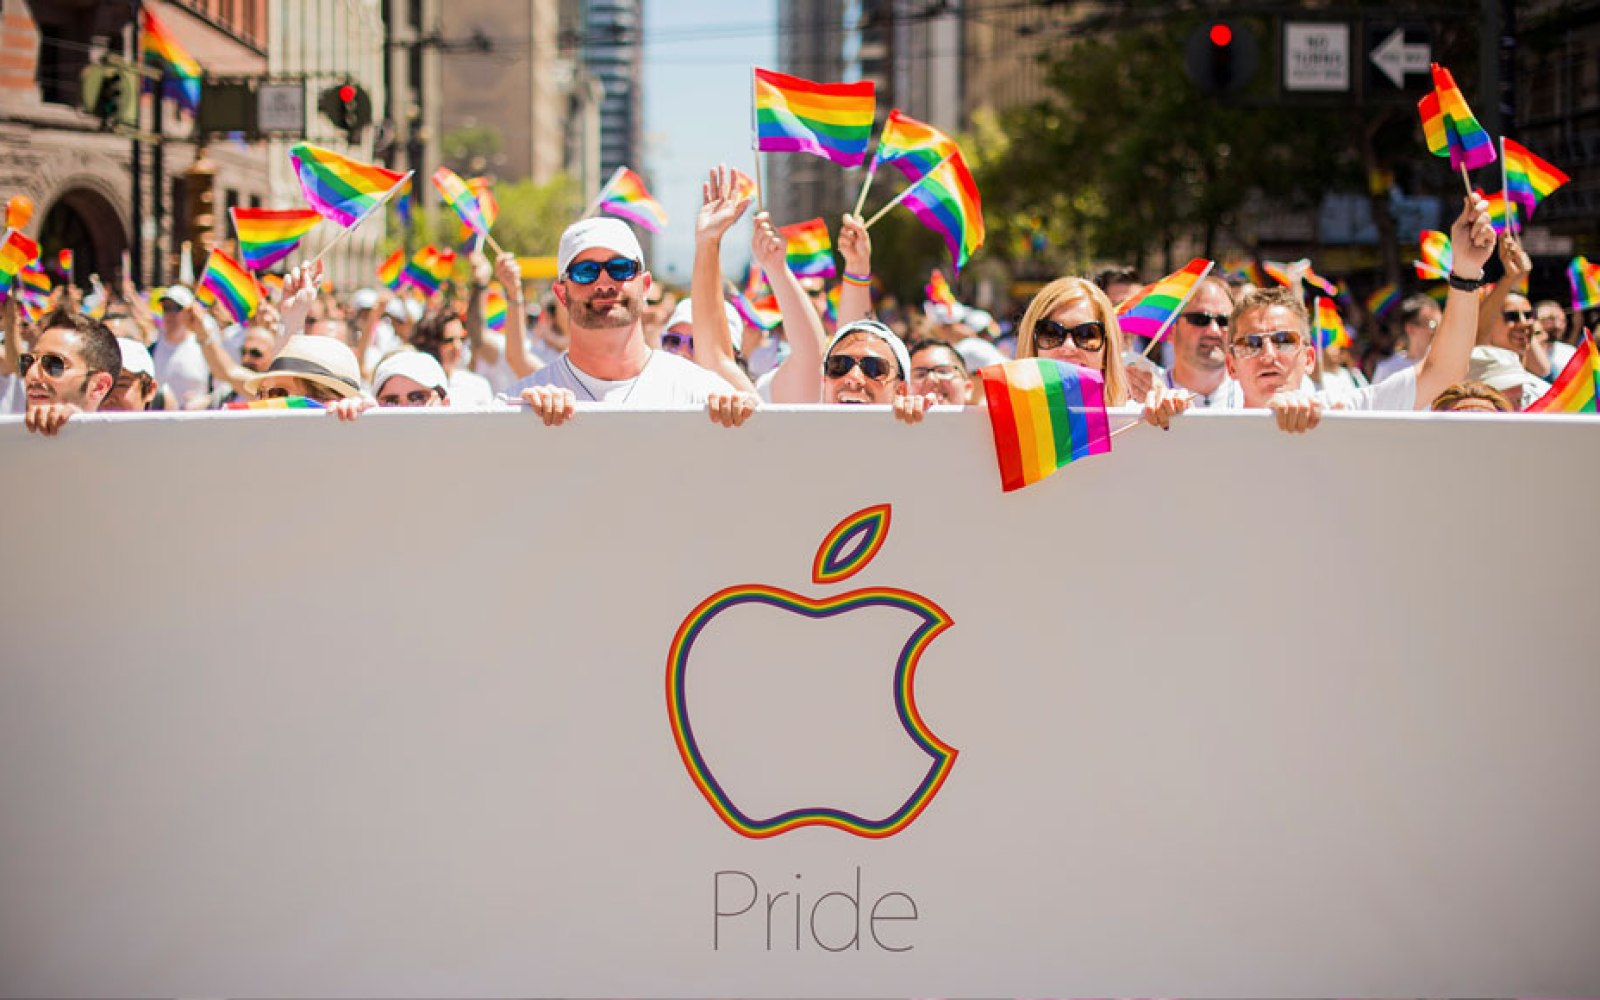 Apple, Google, Microsoft & others urge Supreme Court to legalize same-sex marriage across the USA